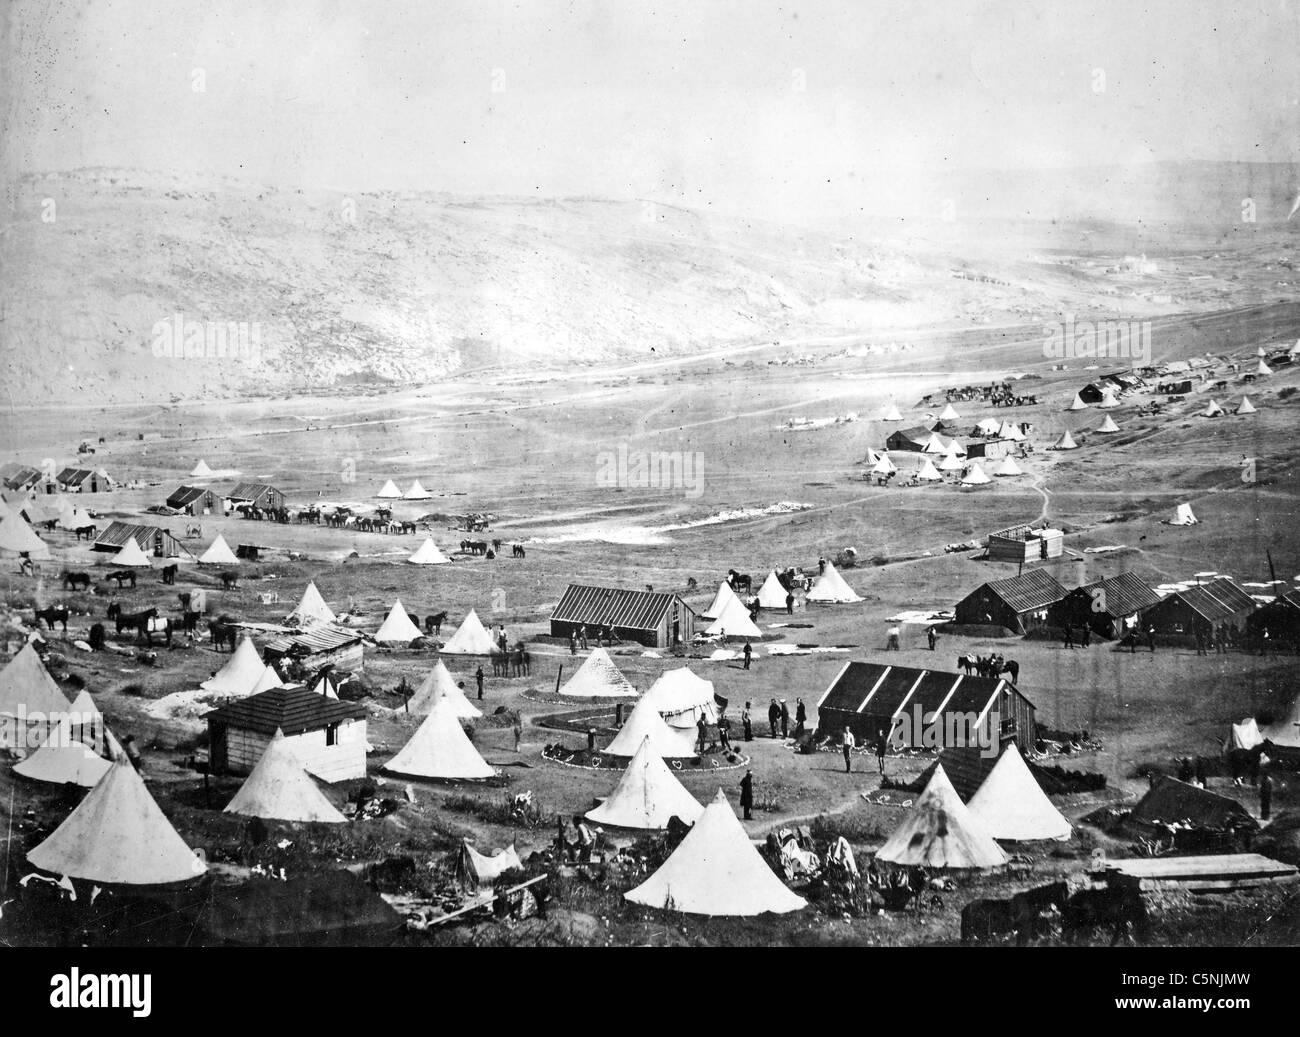 CRIMEAN WAR (1853-1856) 5th Dragoon Guards encampment. Black buildings are stables for their horses - Stock Image